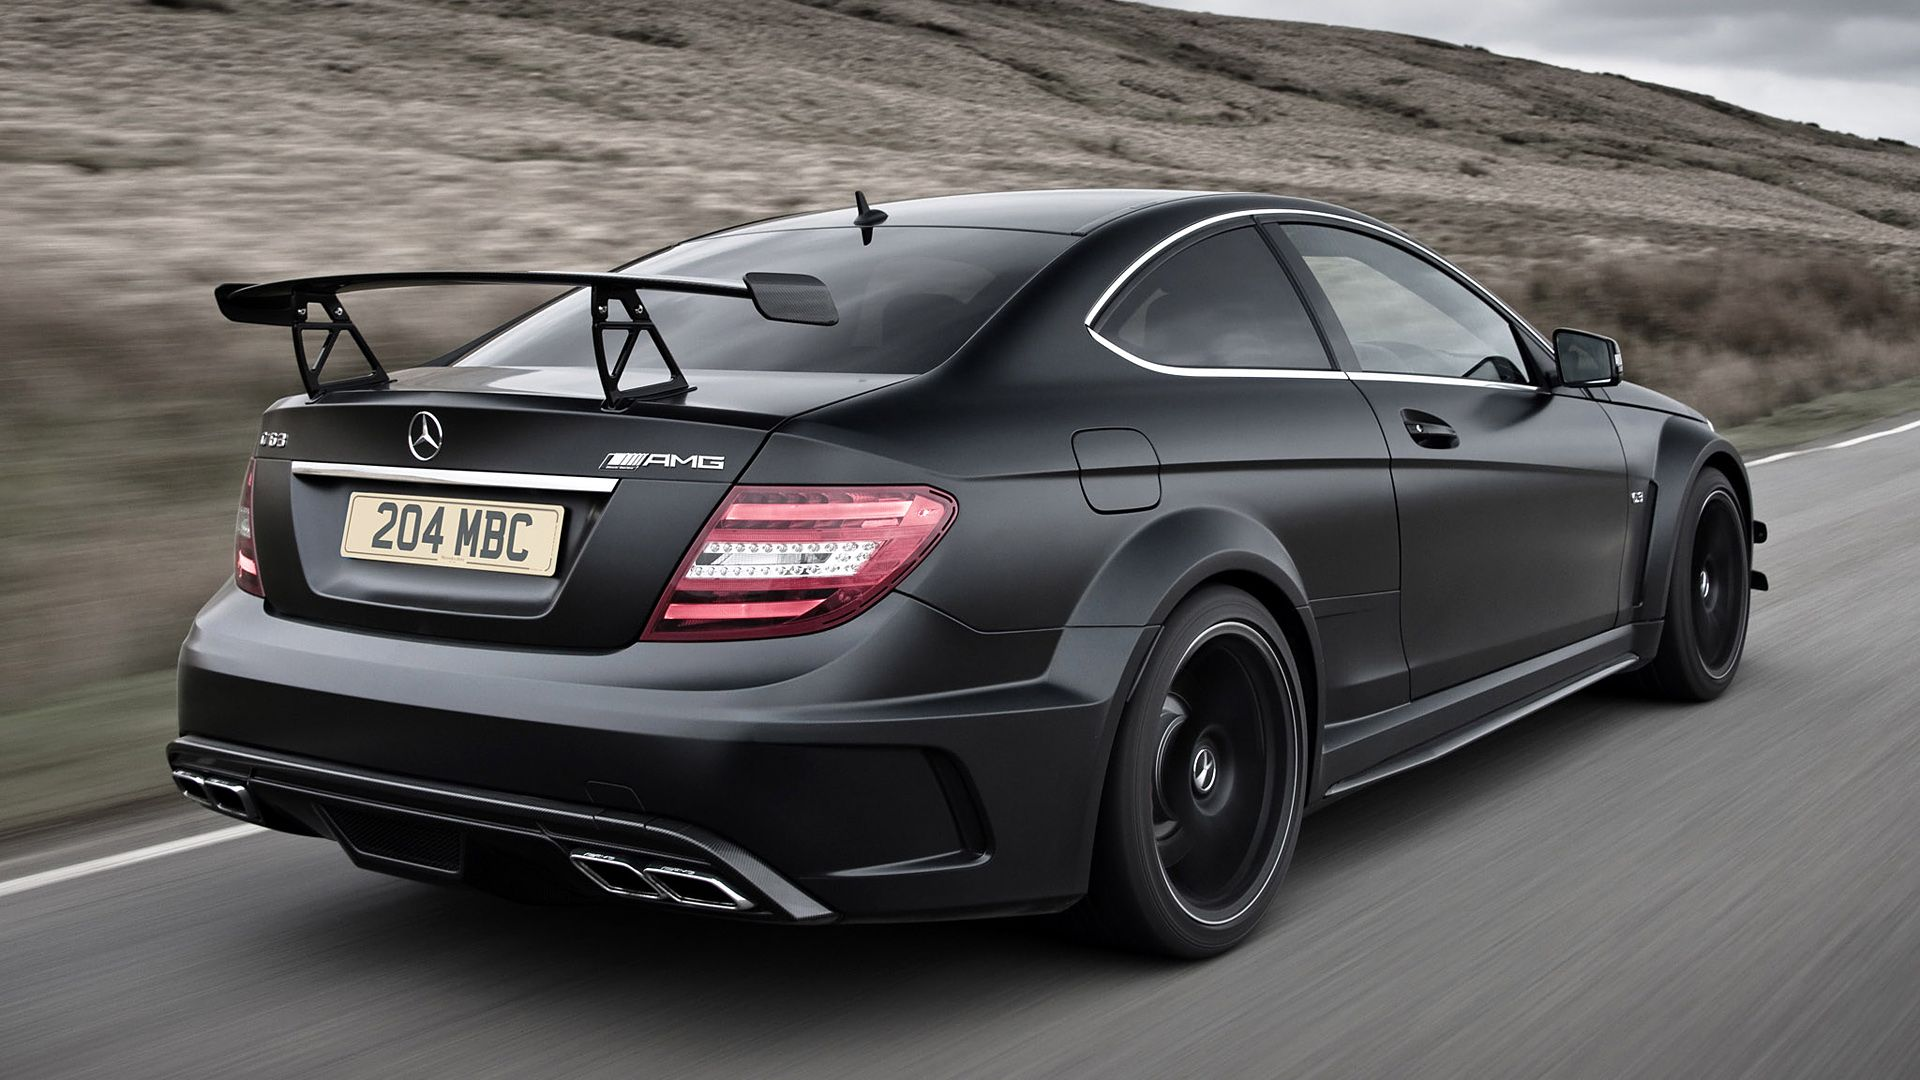 2012 Mercedes Benz C63 Amg Coupe Black Wallpapers Hd Images